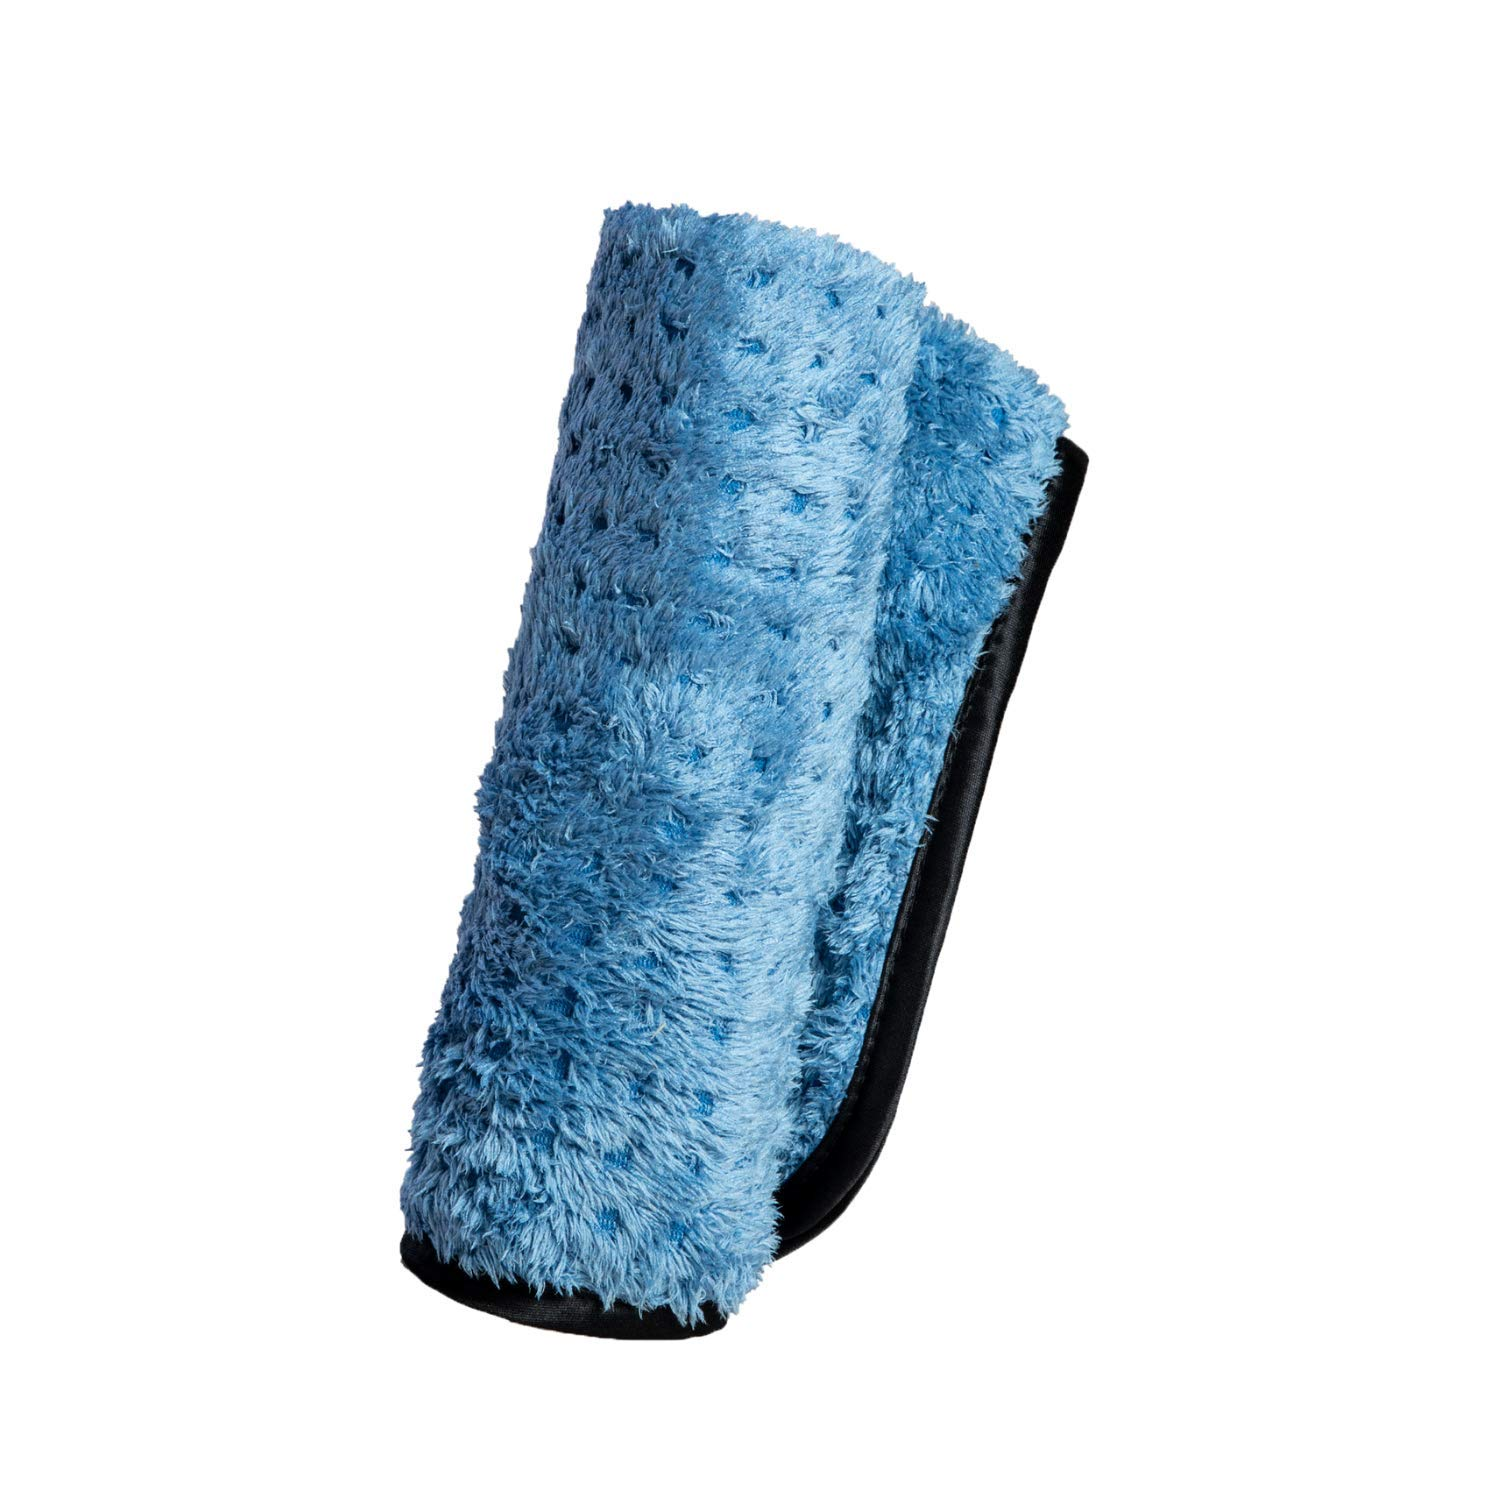 Adam's Pluffle Towel - A Microfiber Fabric Blend from Our Single Soft Towel & Waffle Weave Pattern from Our Waterless Wash Cloth - 16x16 Auto Detailing Rag W/ 490 GSM for Scratch Free (Single)